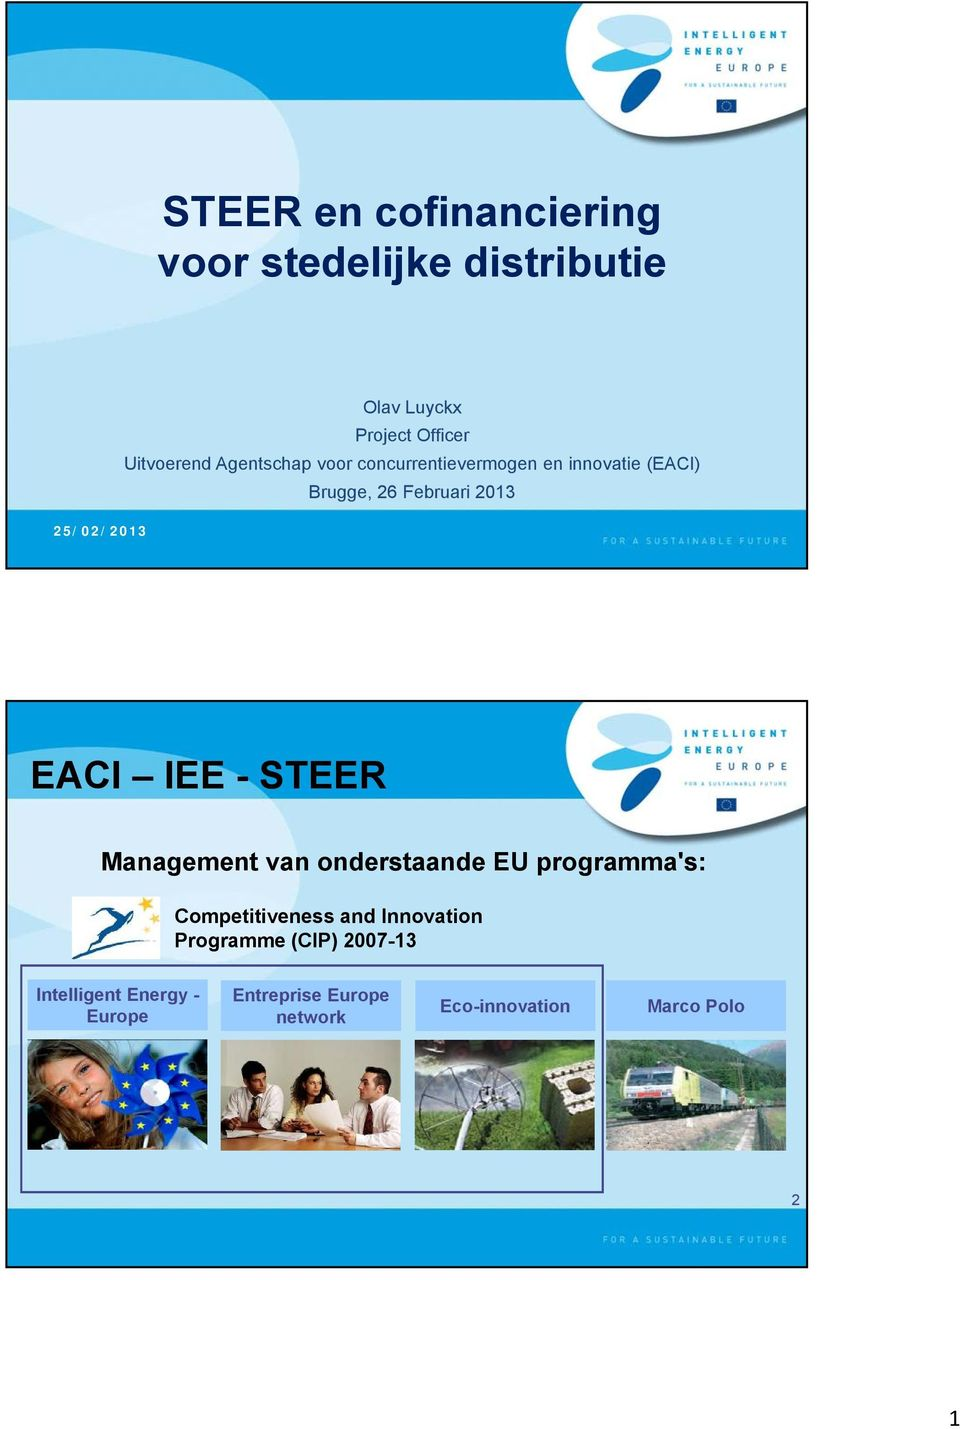 EACI IEE - STEER Management van onderstaande EU programma's: Competitiveness and Innovation